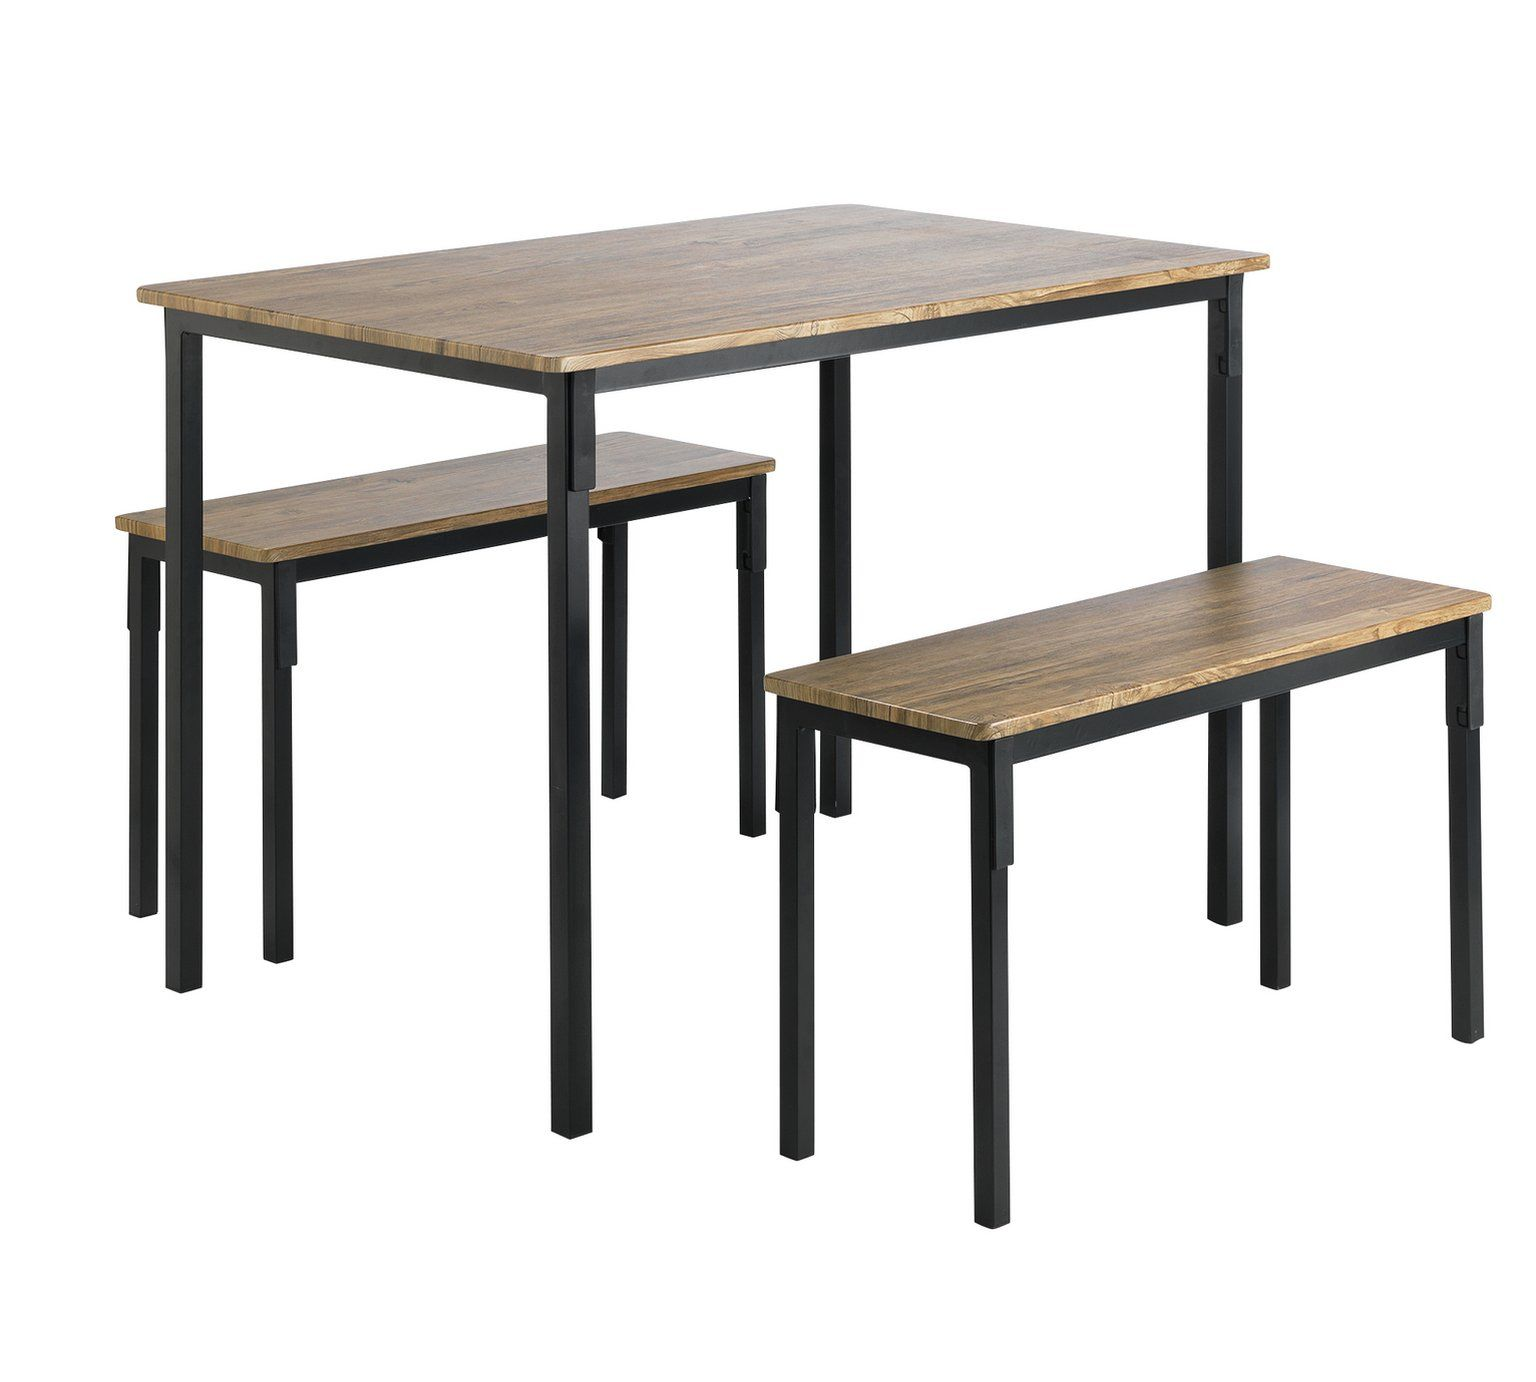 Buy HOME Bolitzo Table and Bench Set at Argos Your line